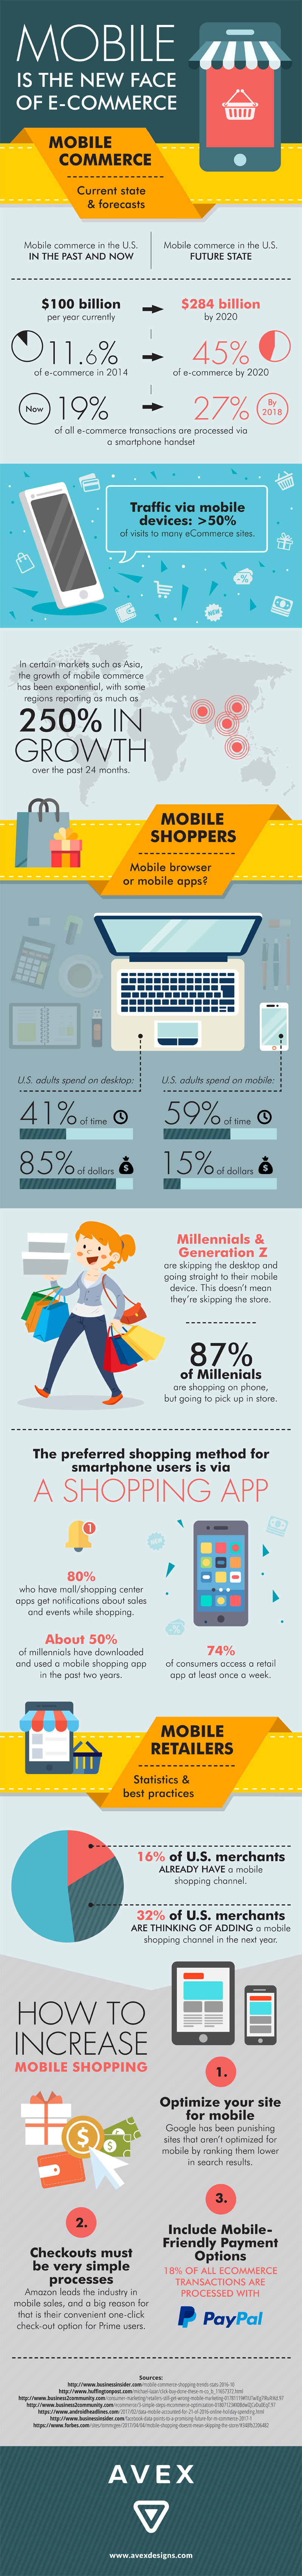 M-commerce trends infographic